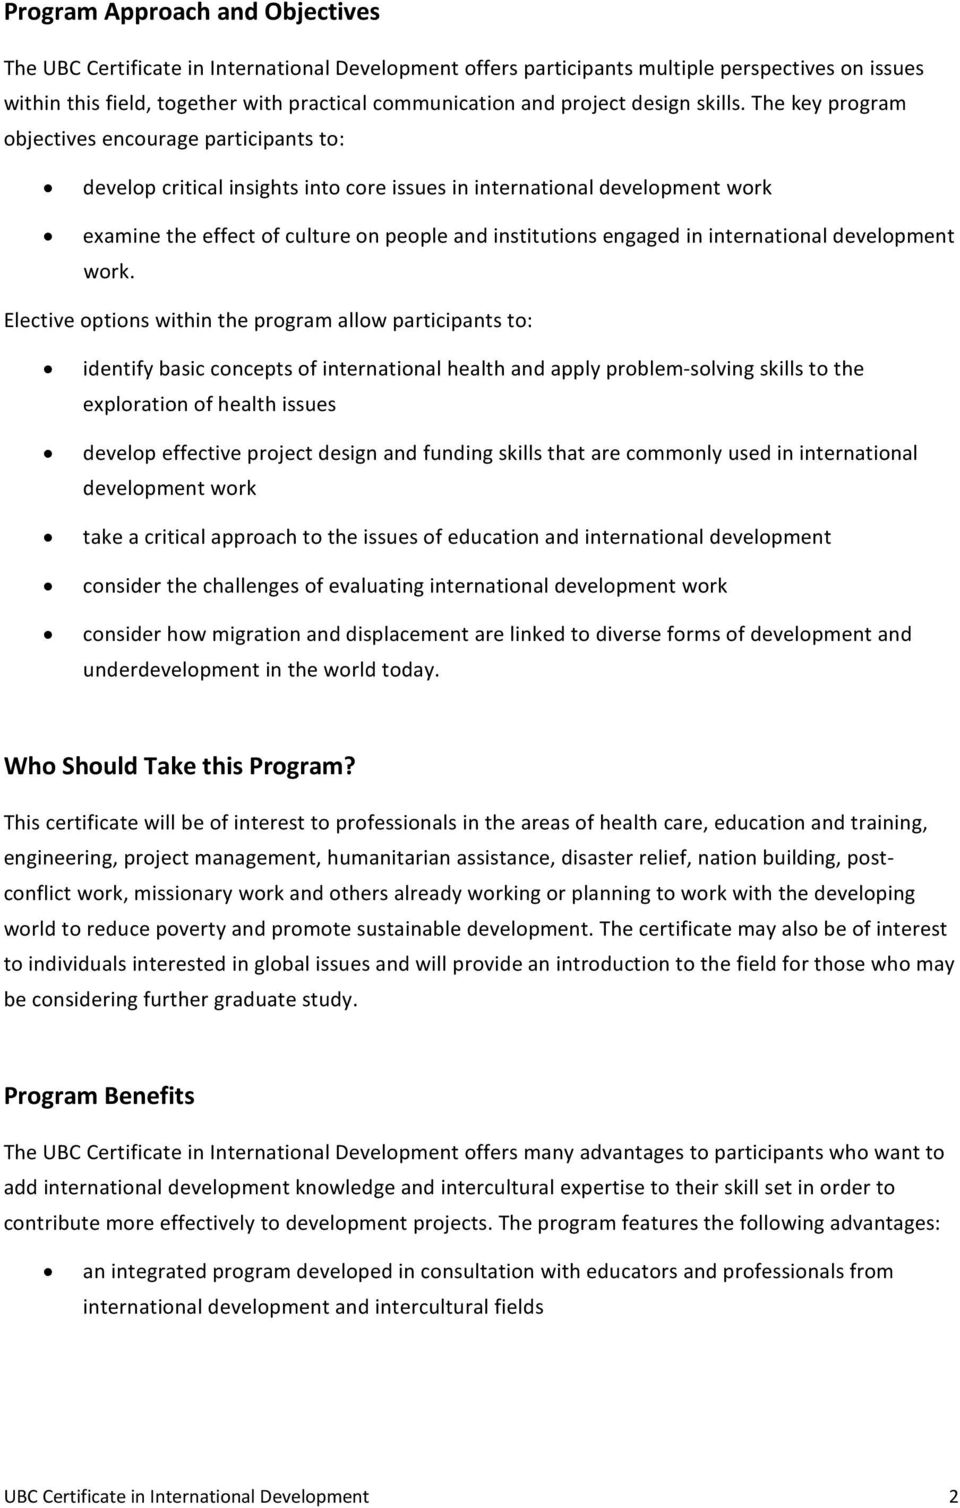 The key program objectives encourage participants to: develop critical insights into core issues in international development work examine the effect of culture on people and institutions engaged in